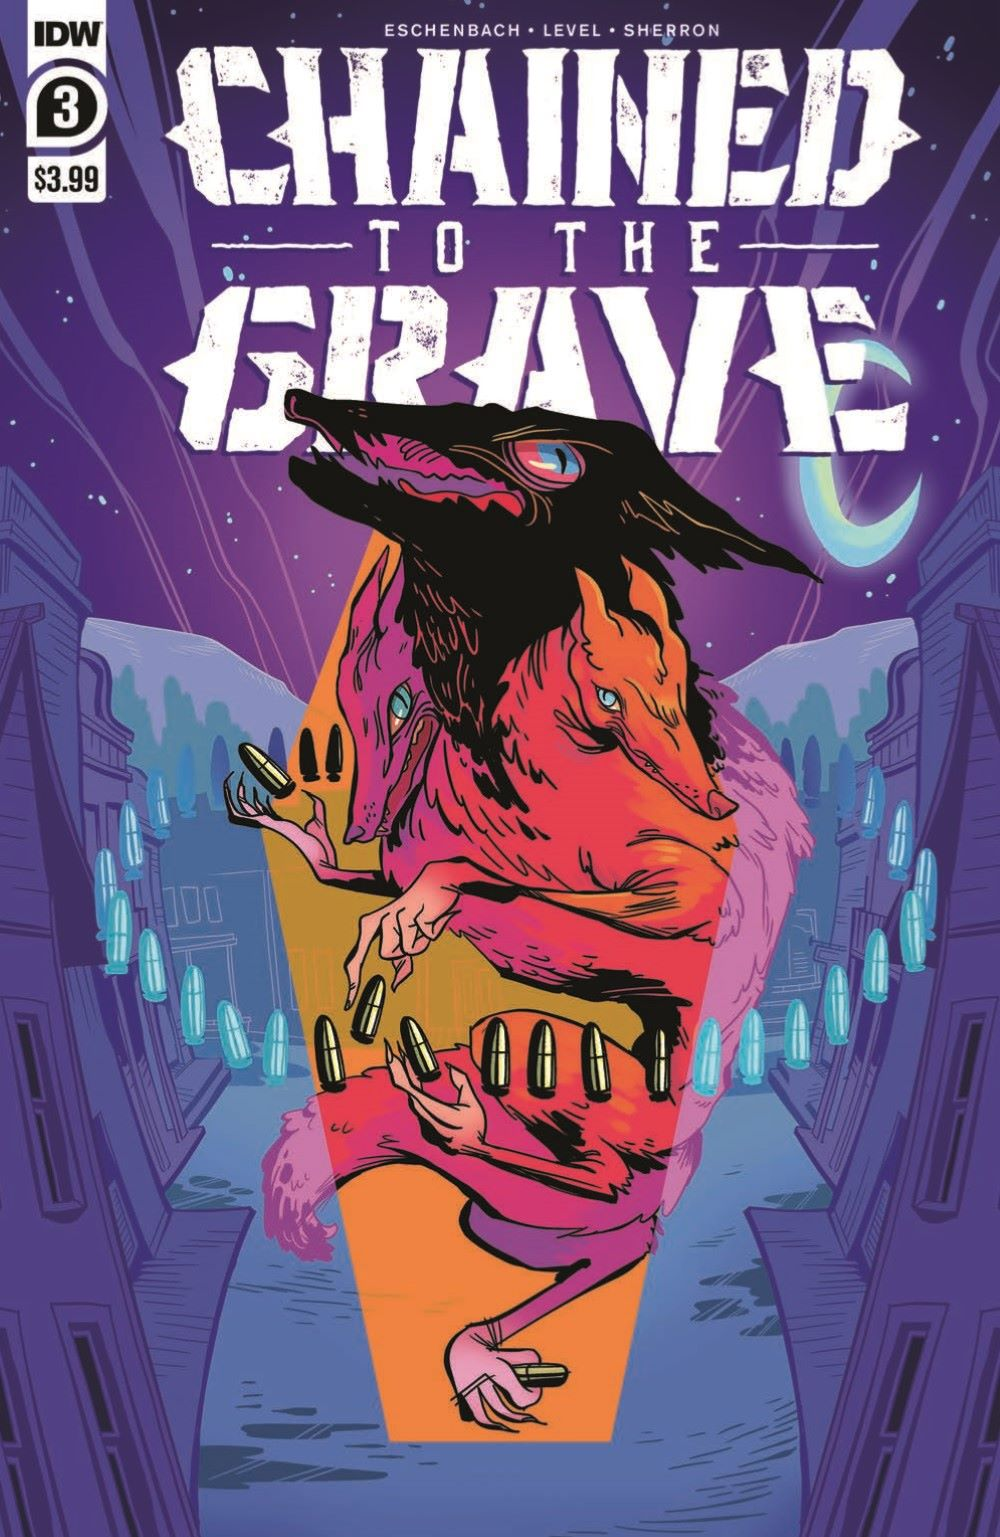 CttG03_pr-1 ComicList Previews: CHAINED TO THE GRAVE #3 (OF 5)